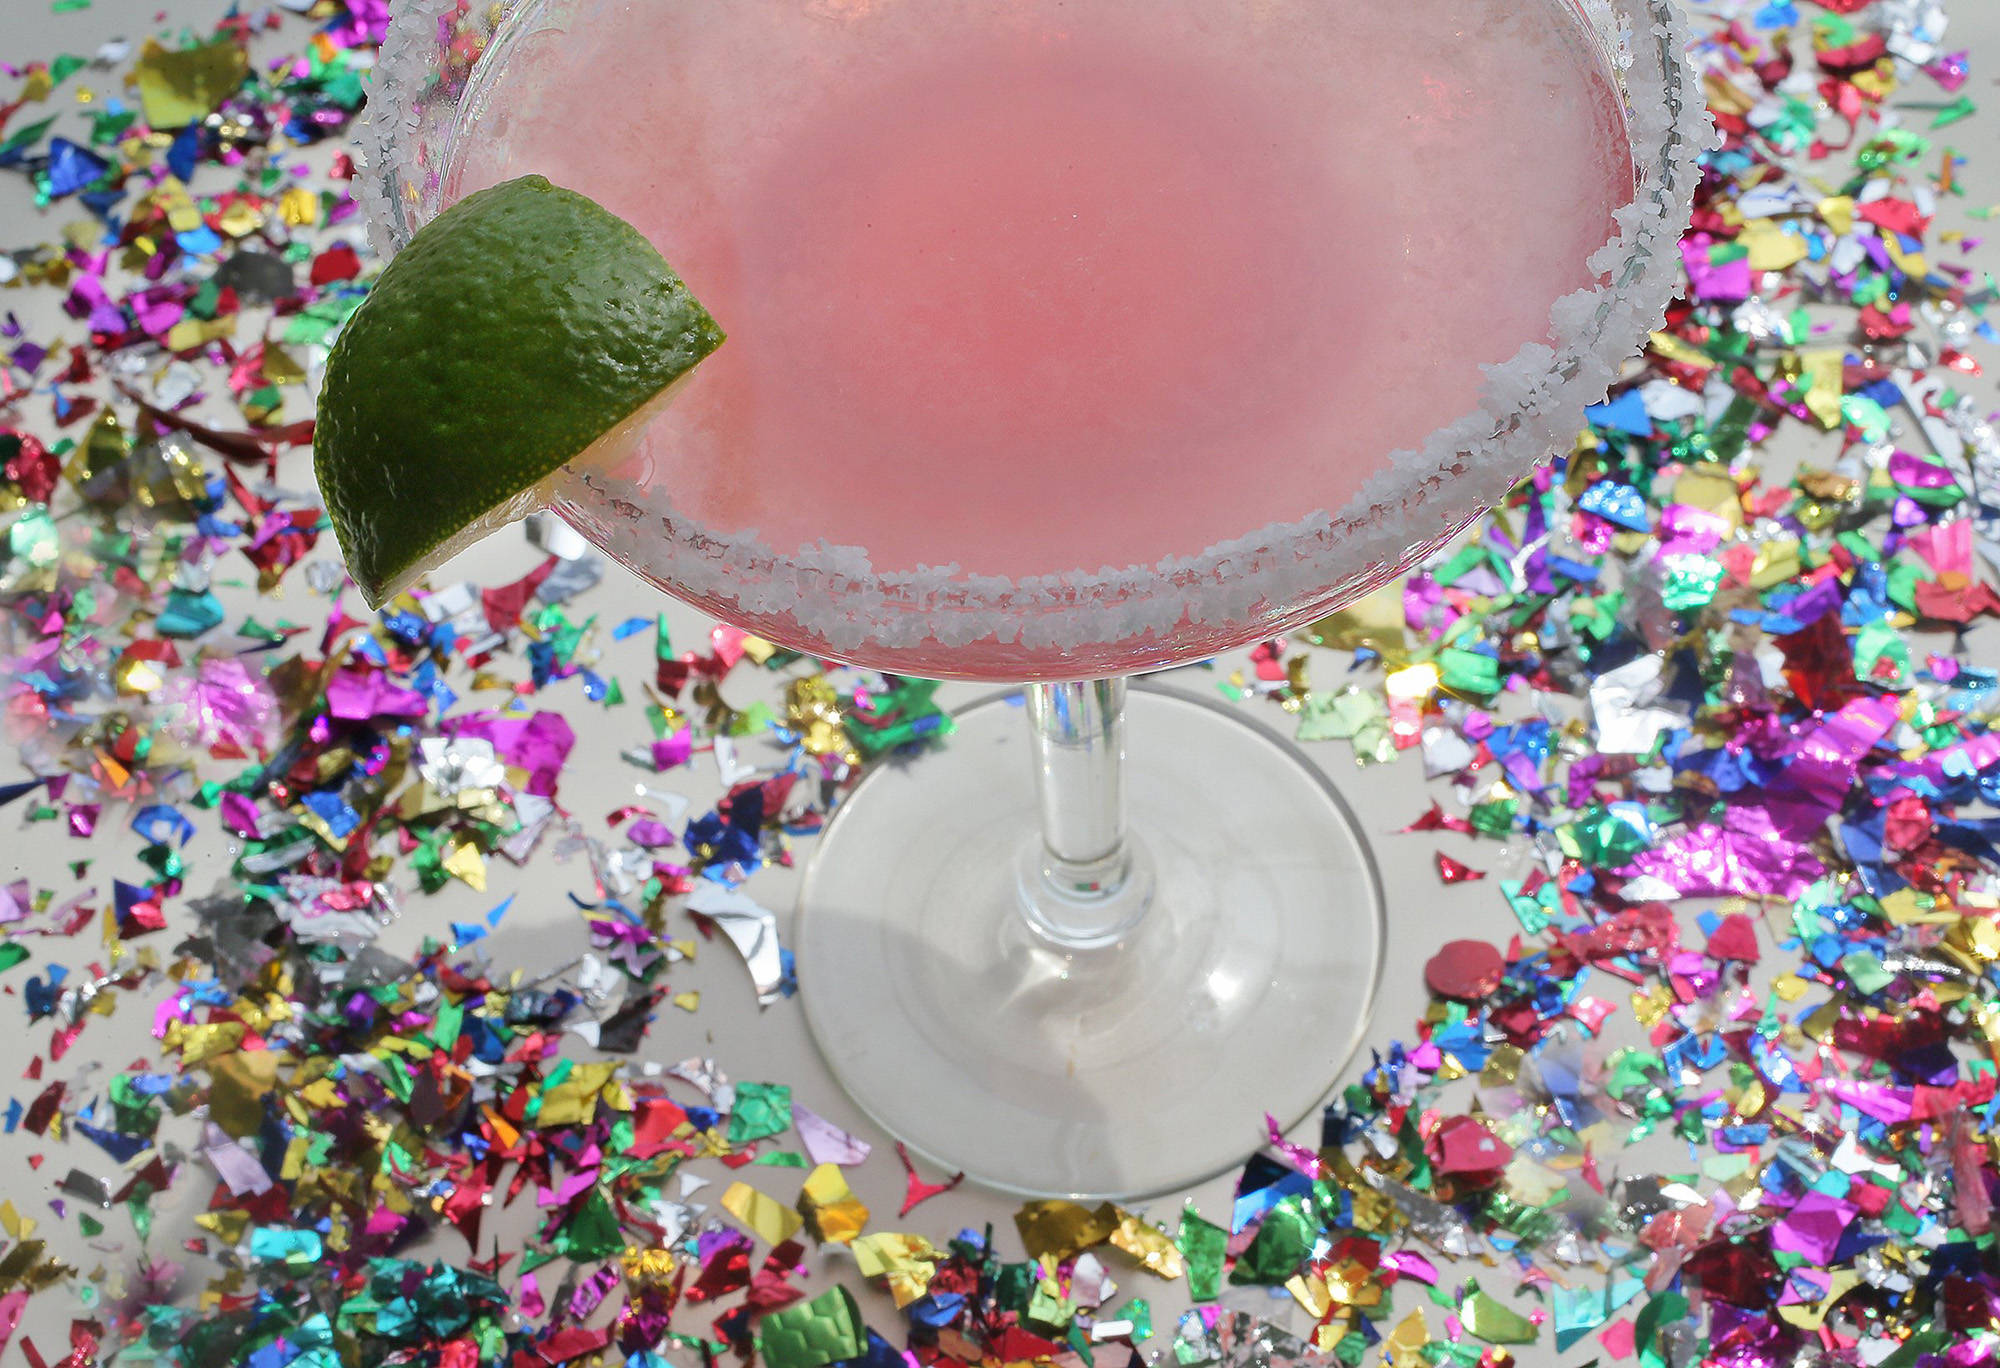 A Rose Margarita. (J.B. Forbes/St. Louis Post-Dispatch/TNS)